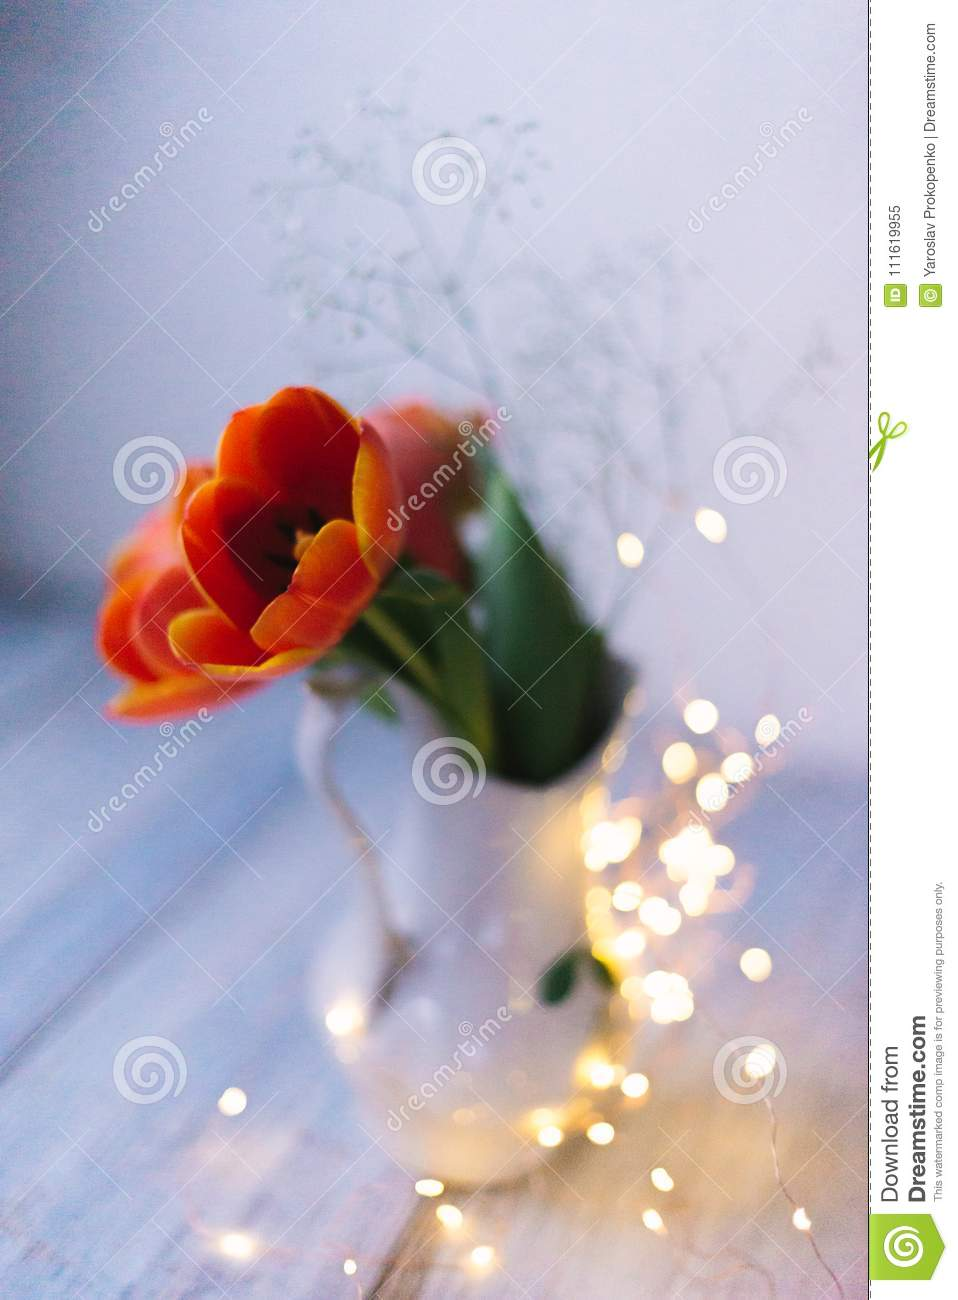 Tulips in a vase on a wooden background